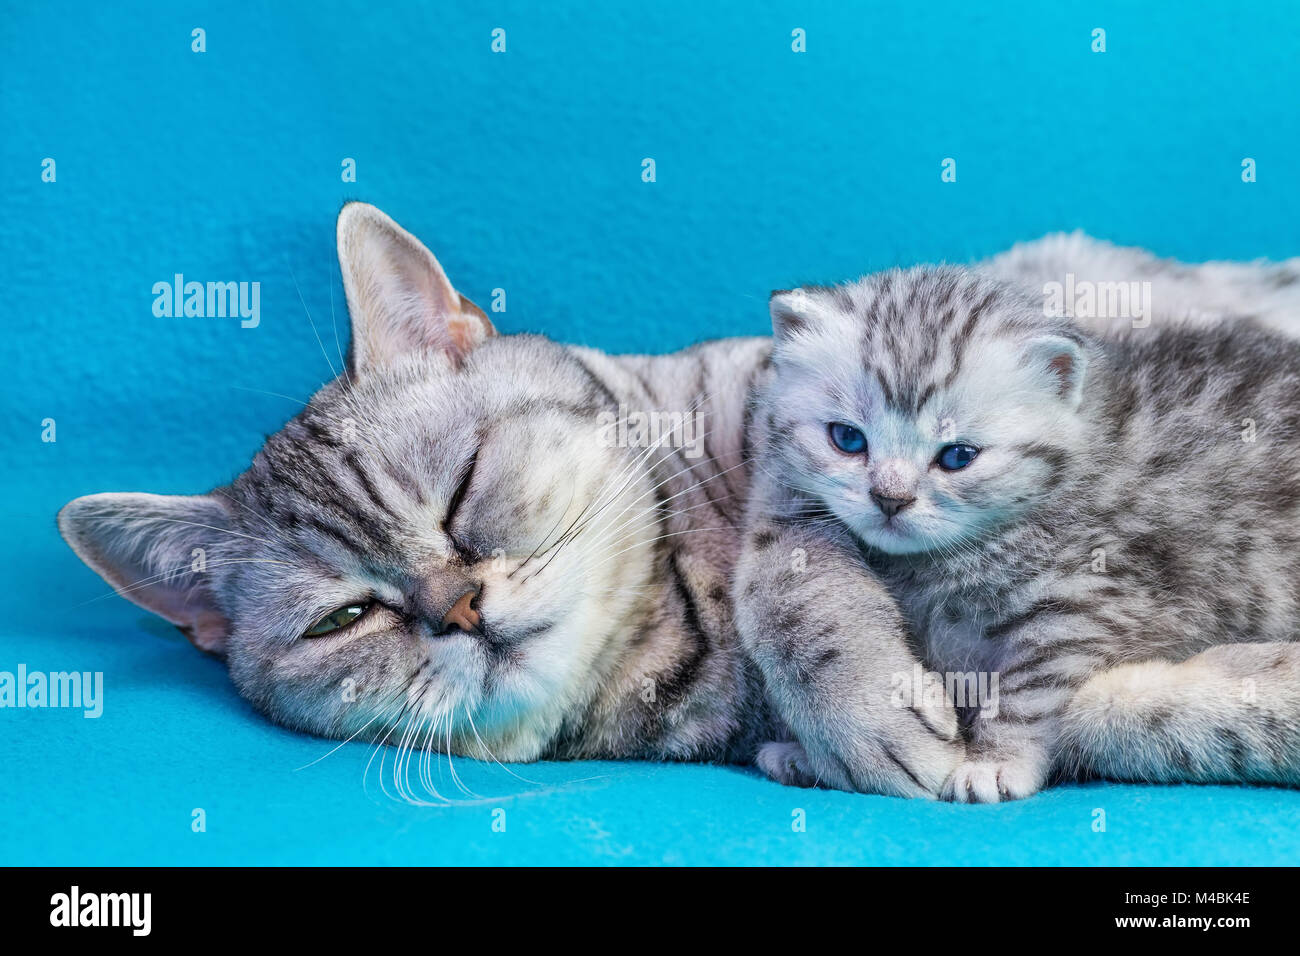 Mother cat lying with kitten on blue garments - Stock Image